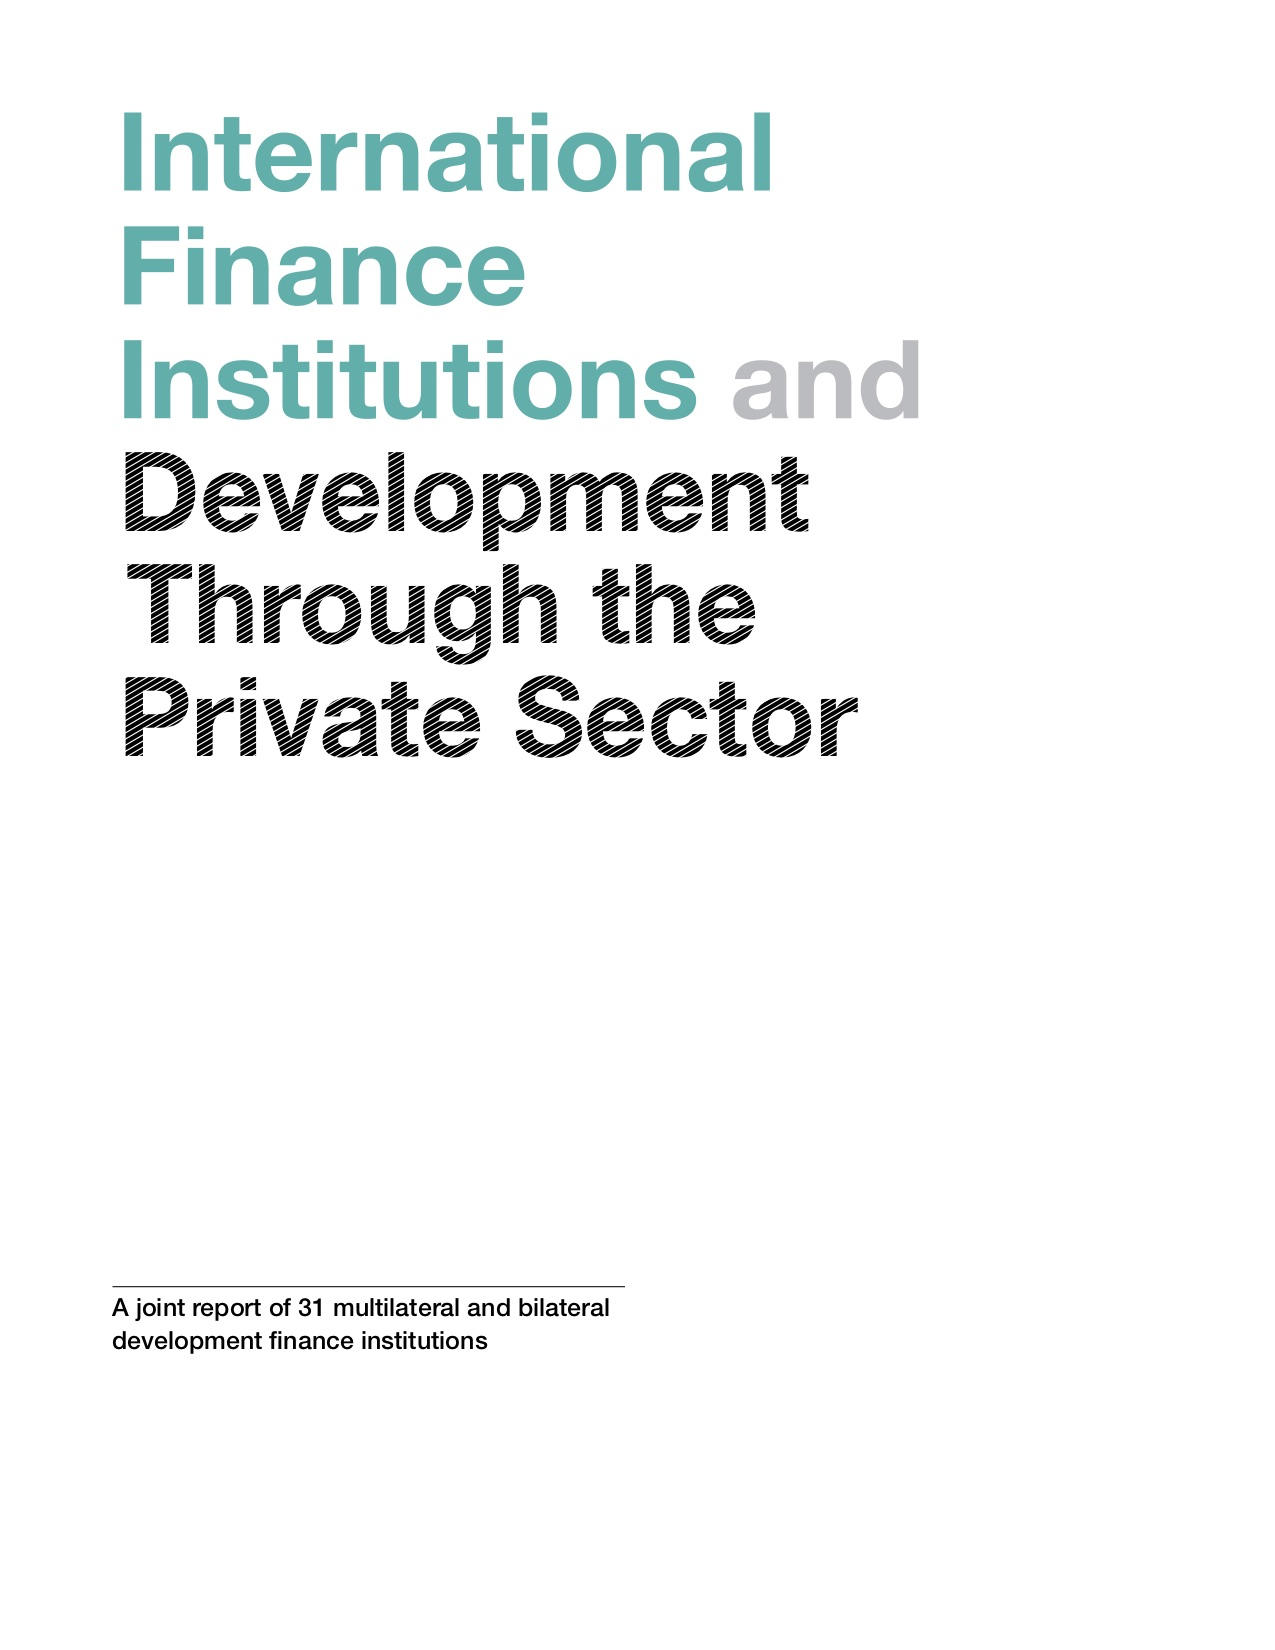 International Finance Institutions and Development Through the Private Sector